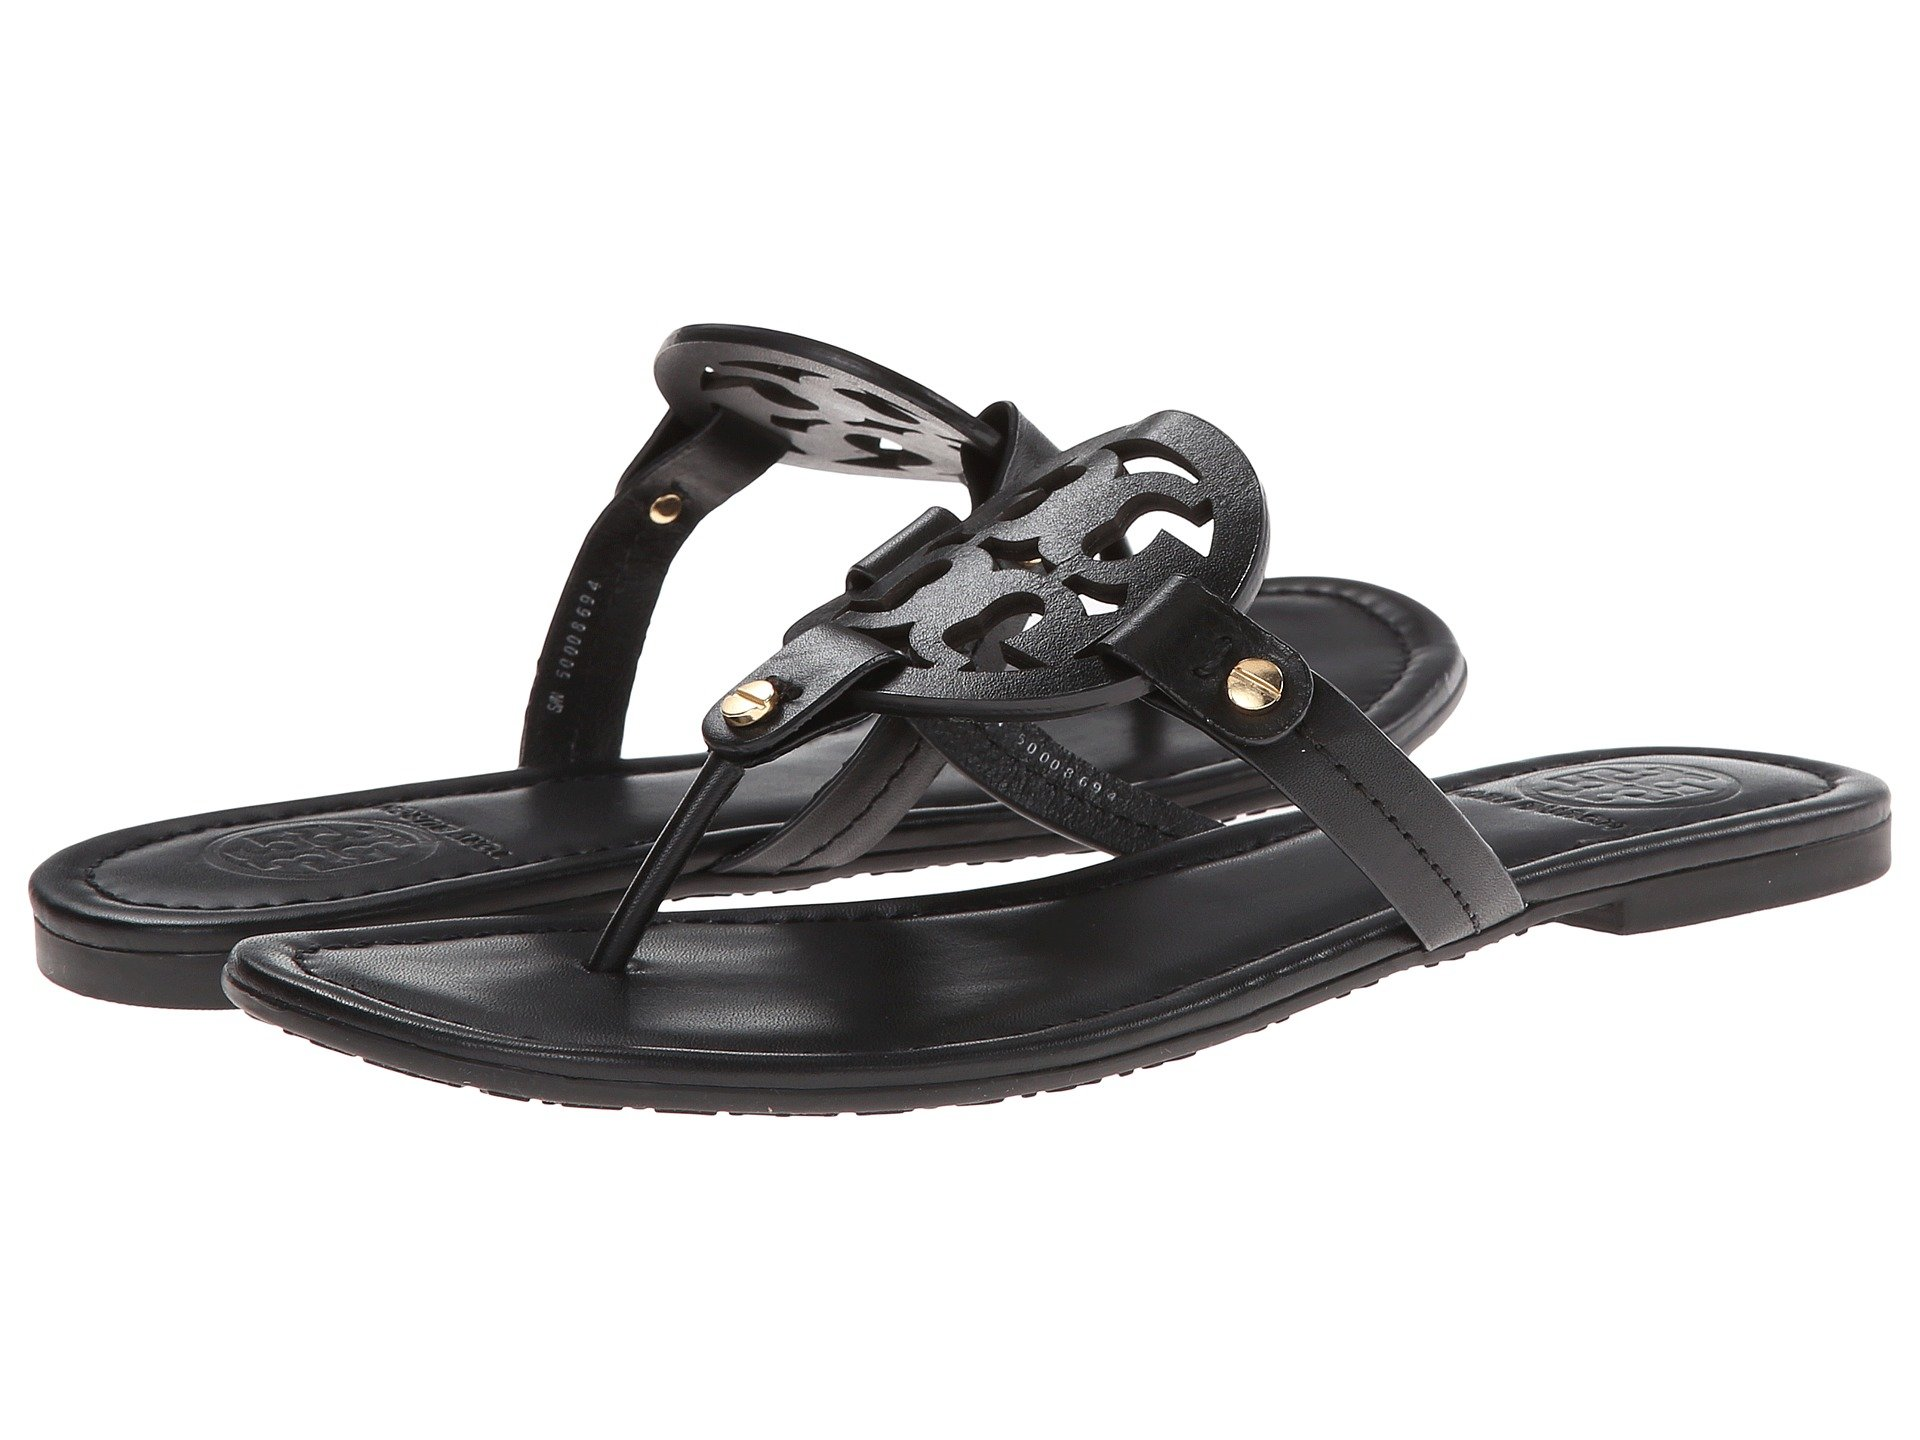 bc26b33690564 Tory Burch Miller Flip Flop Sandal at Luxury.Zappos.com